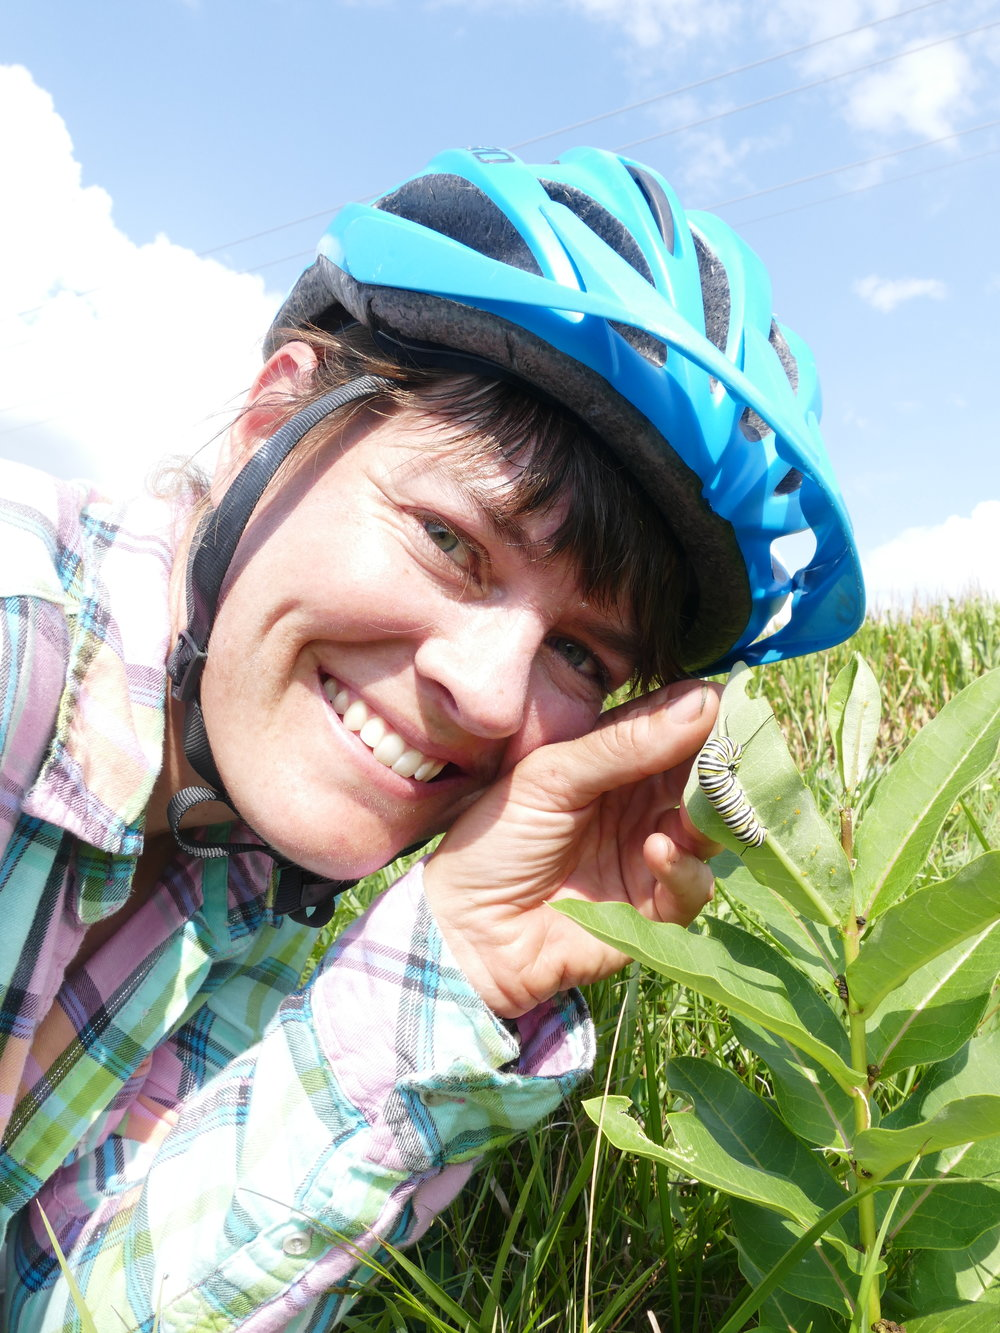 Dykman finds caterpillars along the roads she bikes, and she encourages folks to leave this roadside habitat alone and give the monarchs a chance.